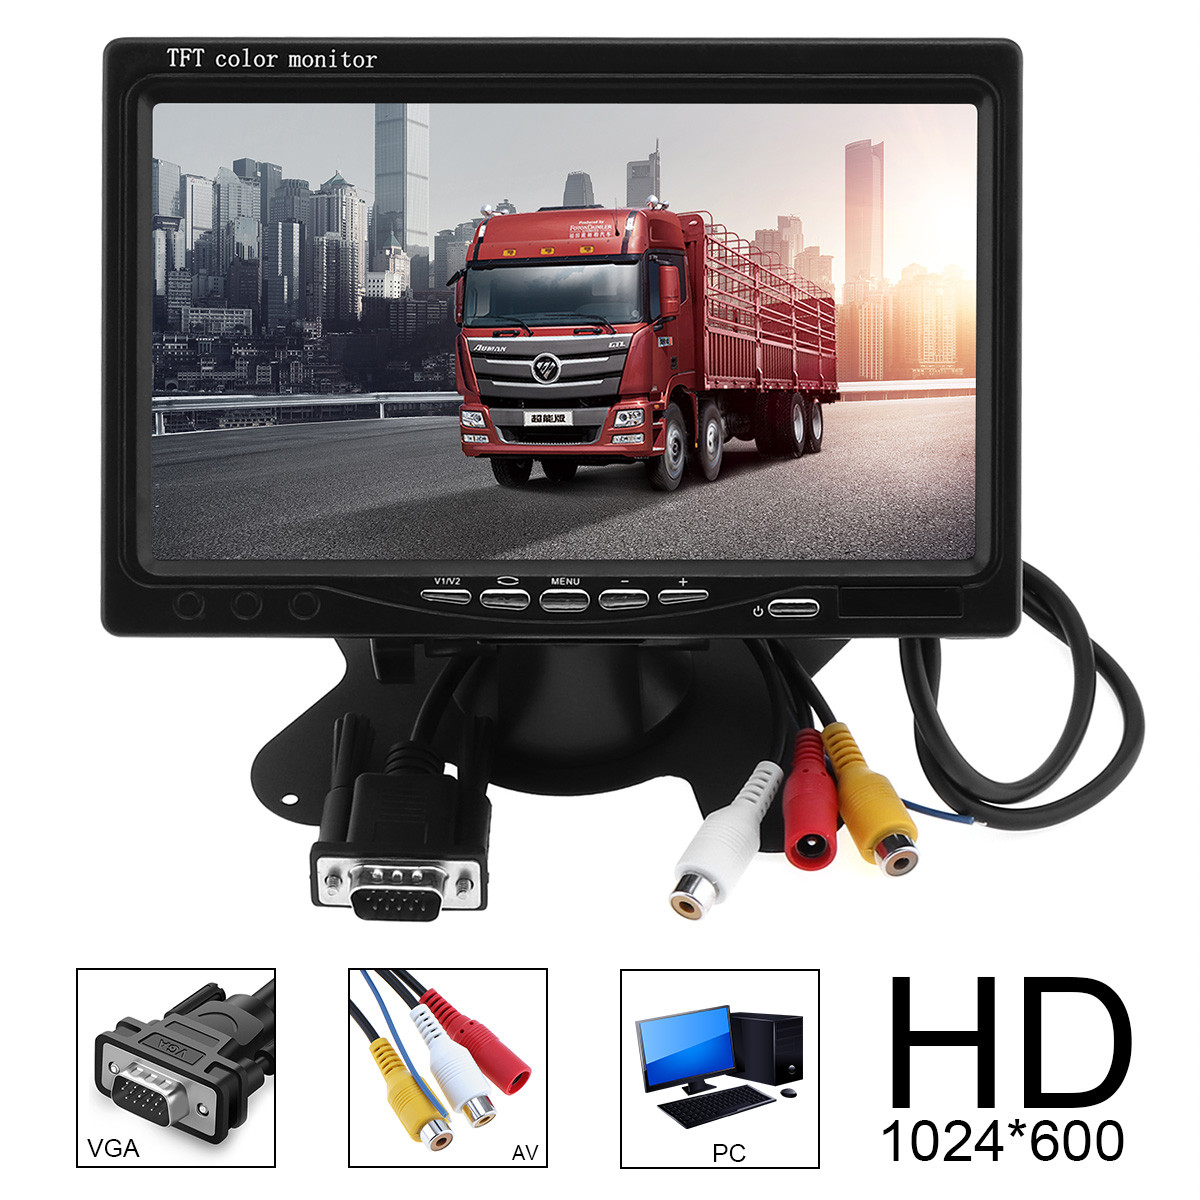 1024x600 7 Inch Car Home Monitor Multifunction Bright Color VGA Interface TFT LCD AV Revers Rearview Monitor